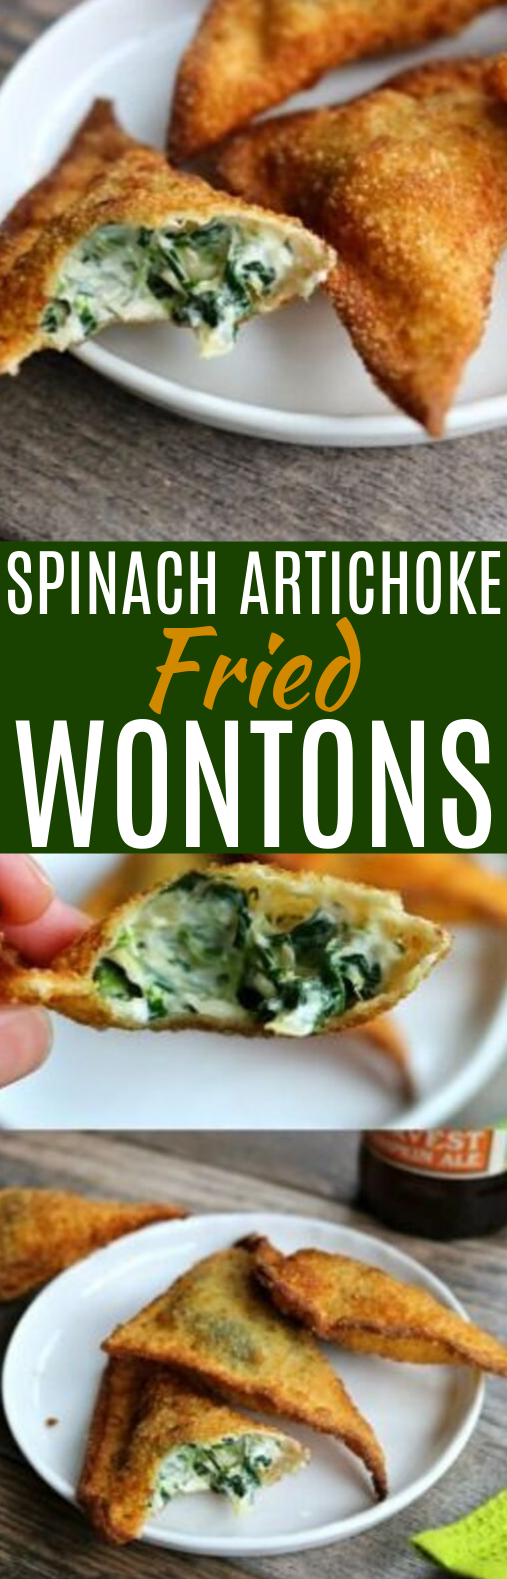 Spinach and Artichoke Fried Wontons #vegetarian #appetizers